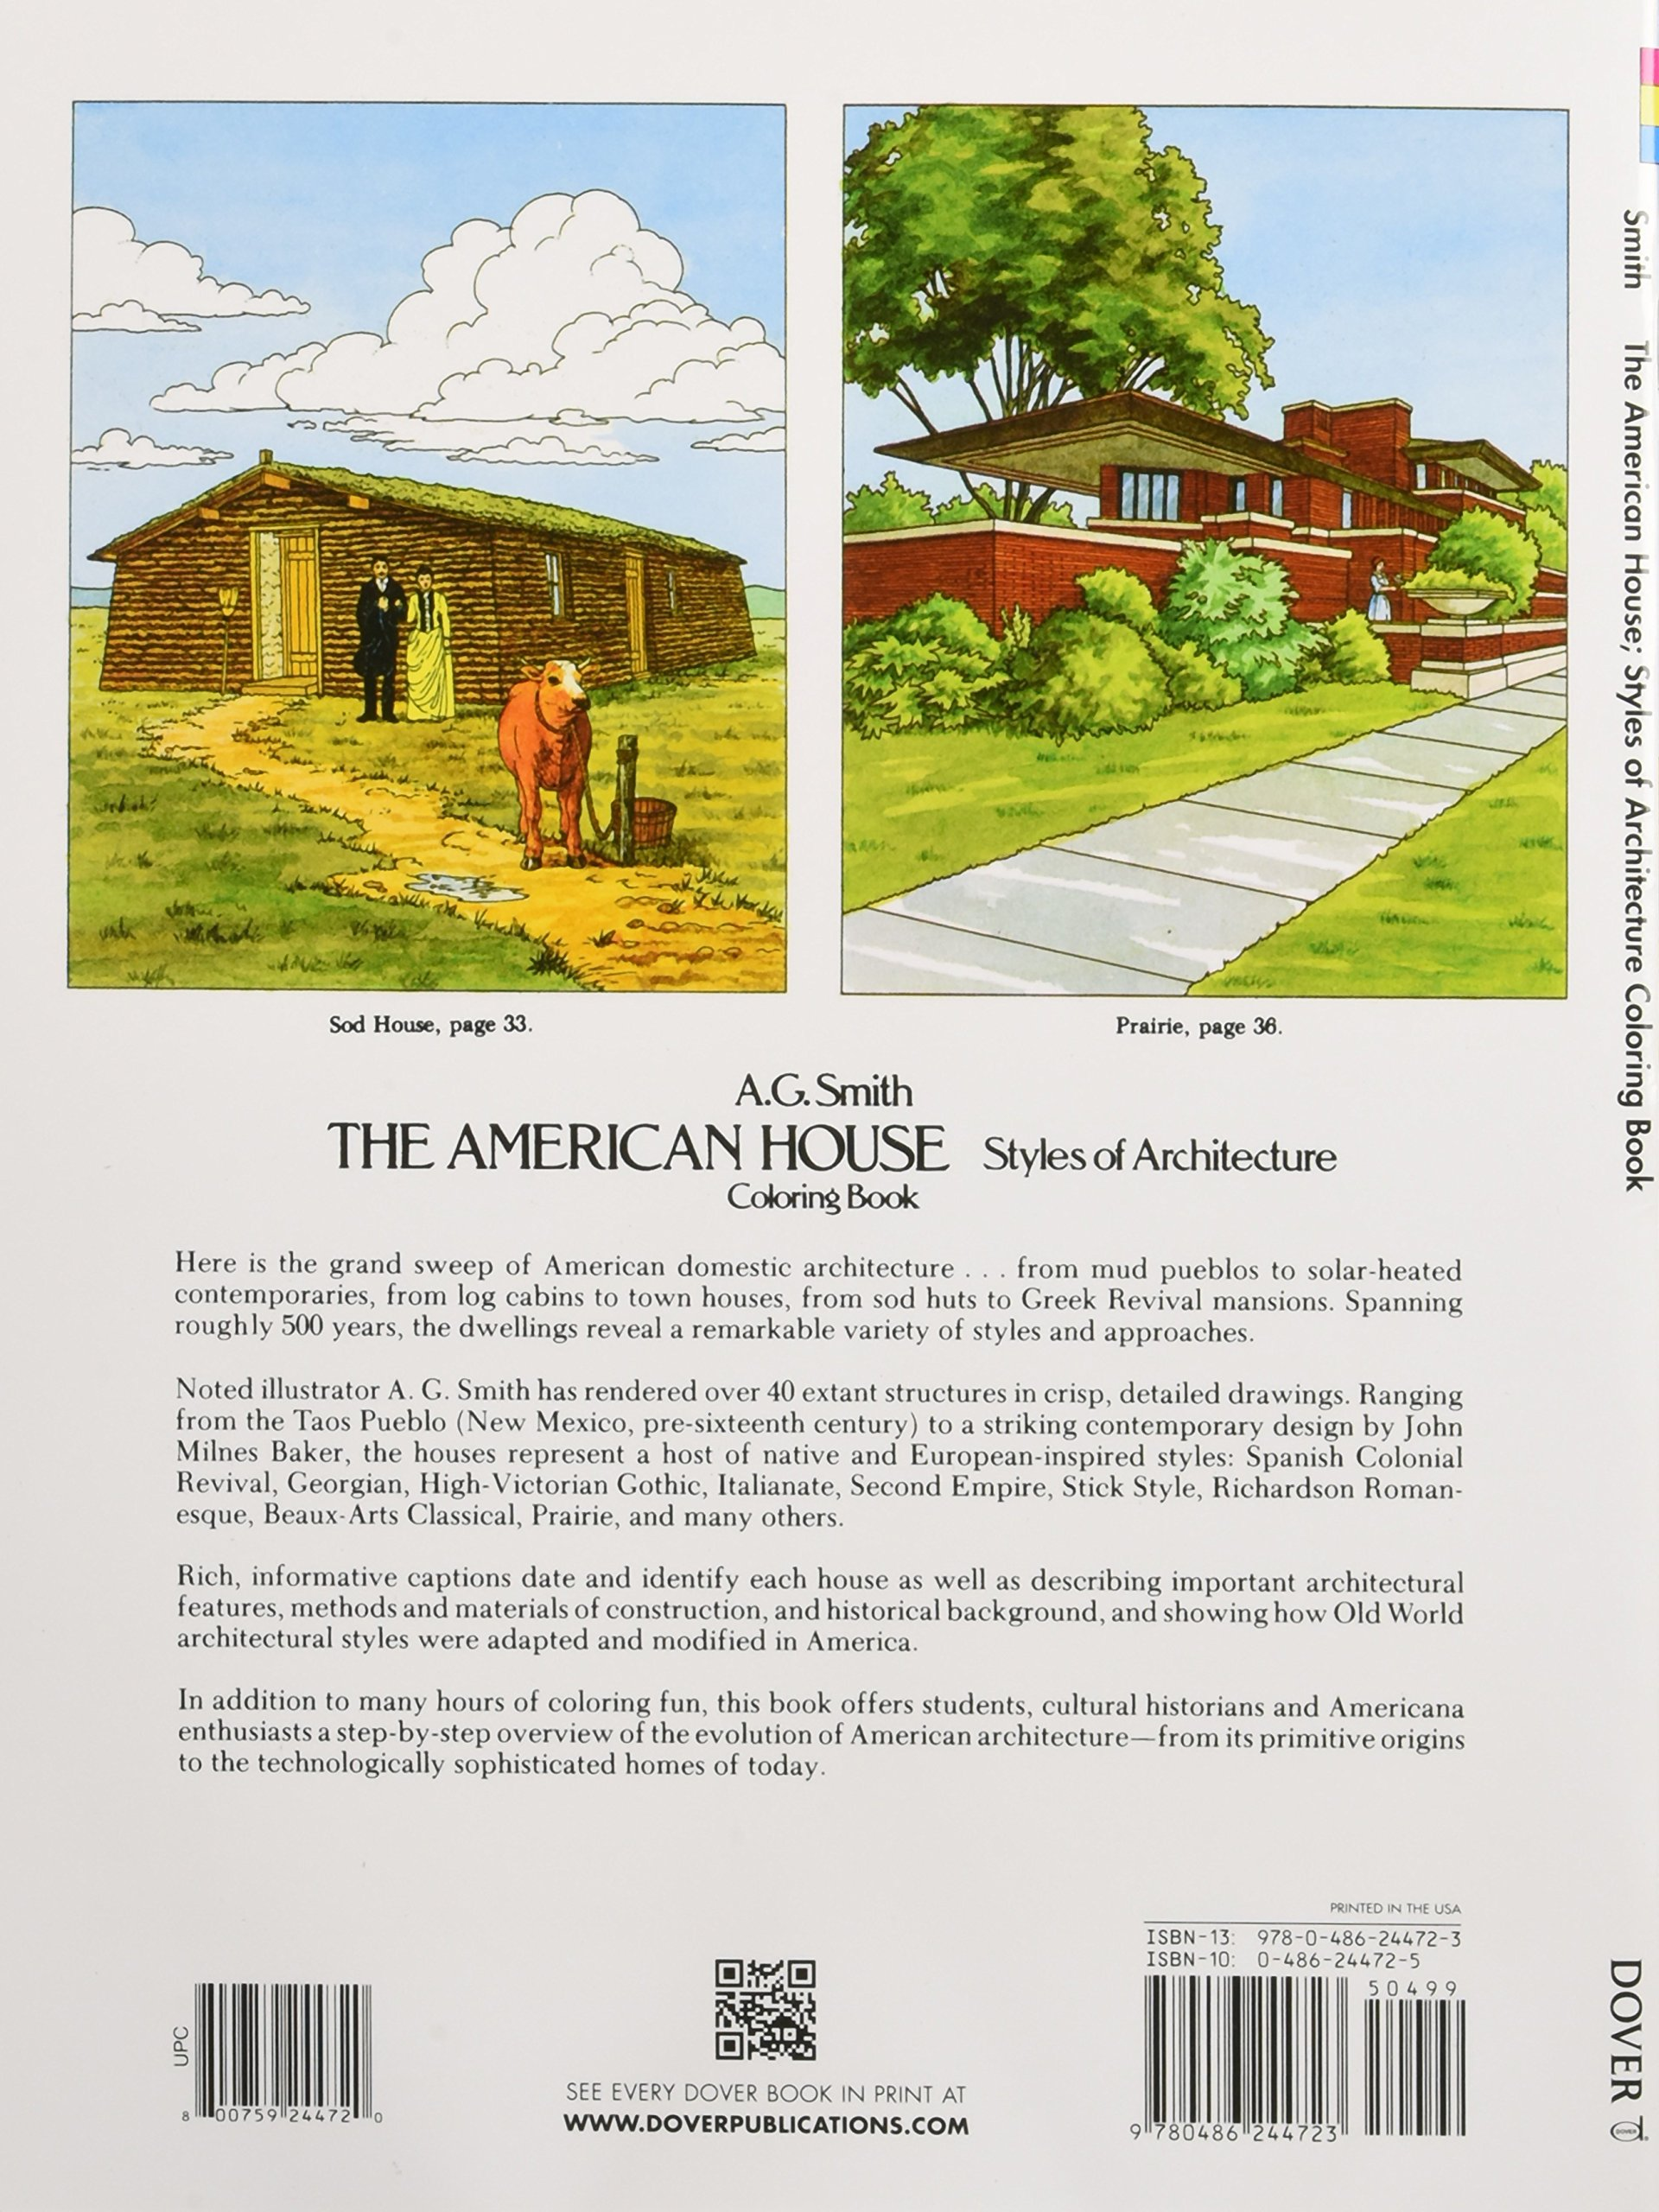 the american house styles of architecture coloring book dover the american house styles of architecture coloring book dover history coloring book a g smith 9780486244723 amazon com books